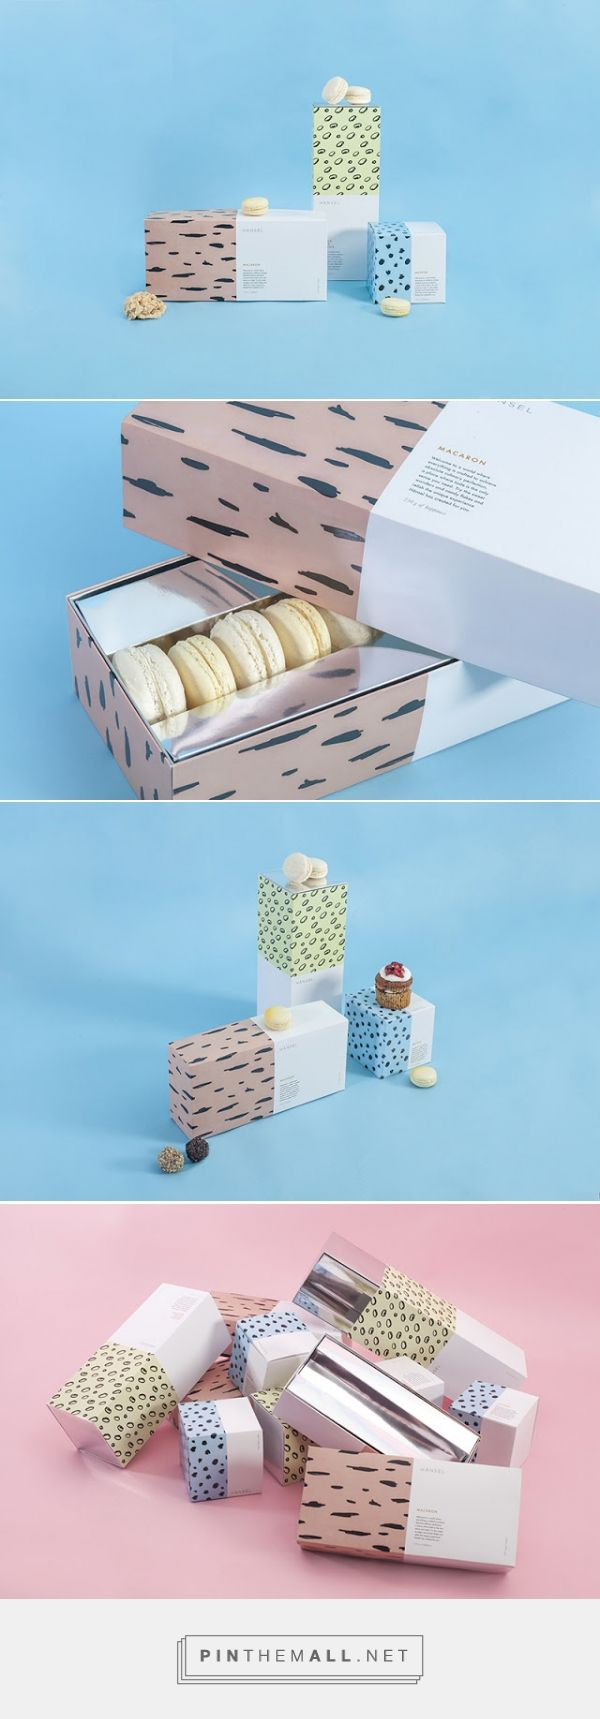 HÄNSEL #Pastry #packaging designed by CHAPTER - http://www.packagingoftheworld.com/2015/05/hansel.html